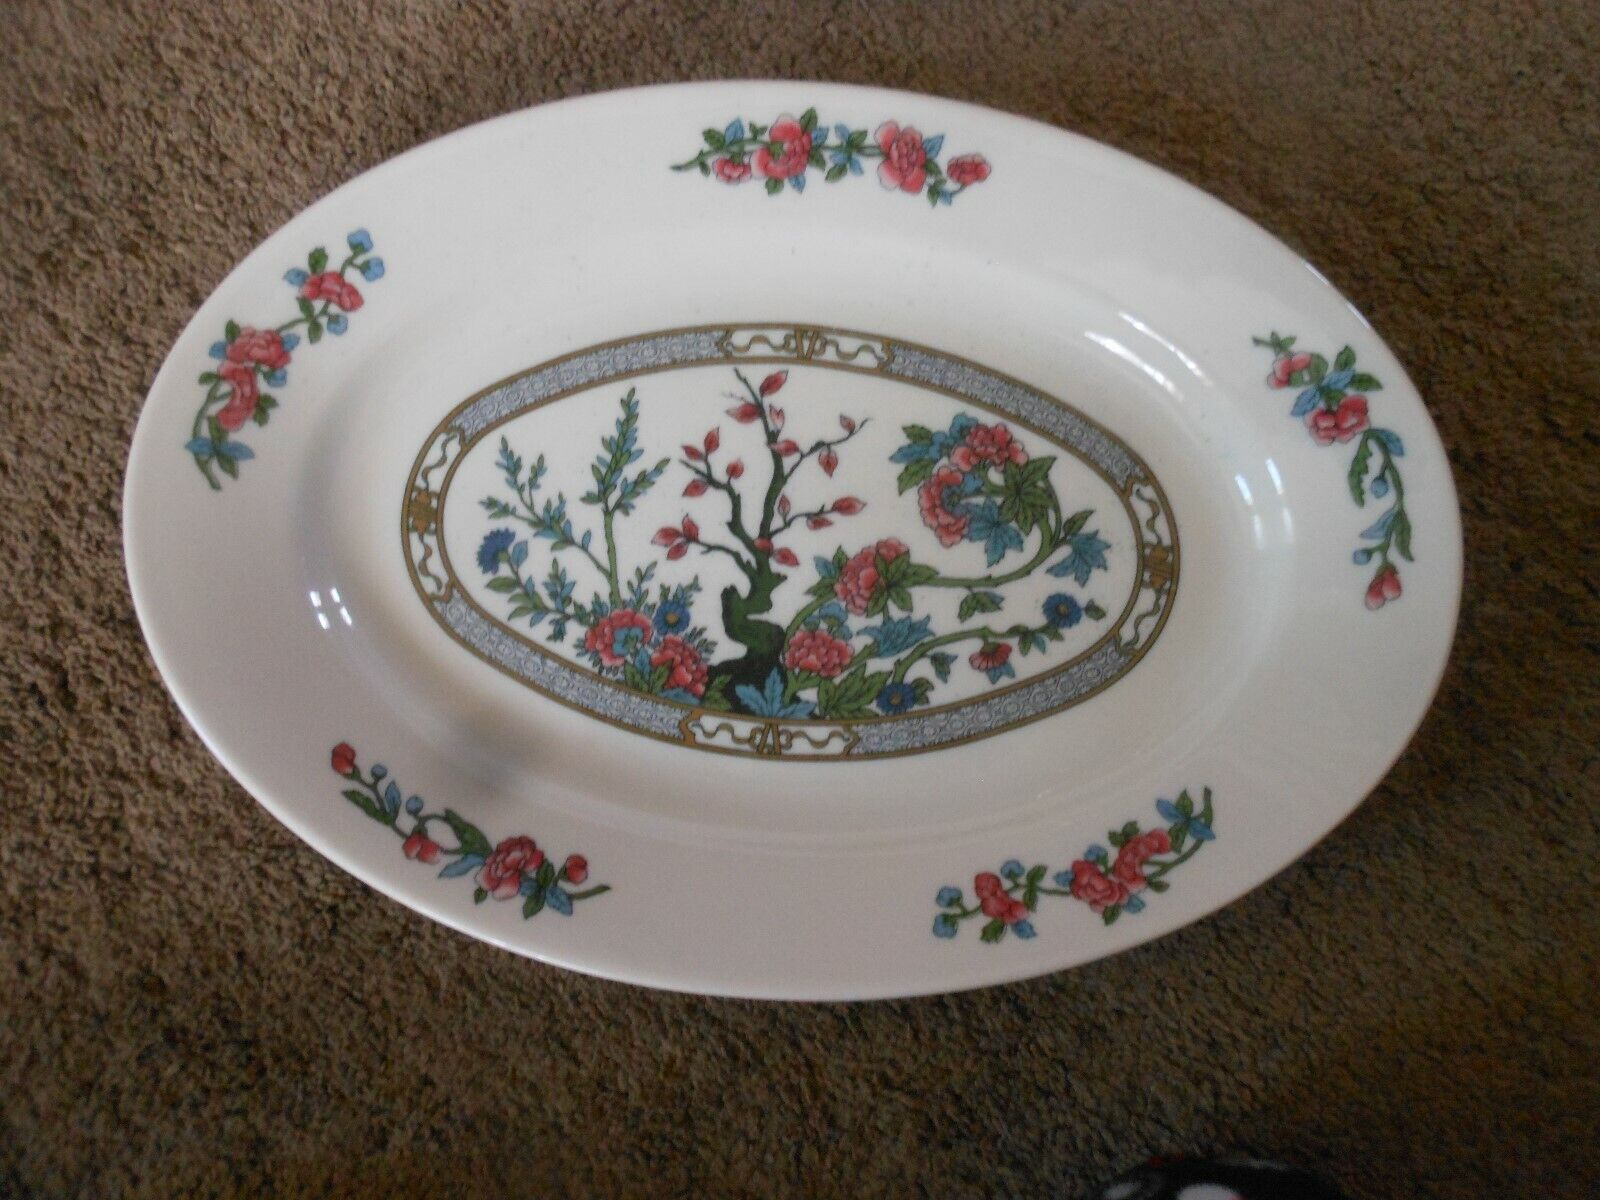 PRETTY IVORY LAMBERTON SCAMMELL CHINA SERVING PLATTER, HEAVY, USA MADE, FLOWERS